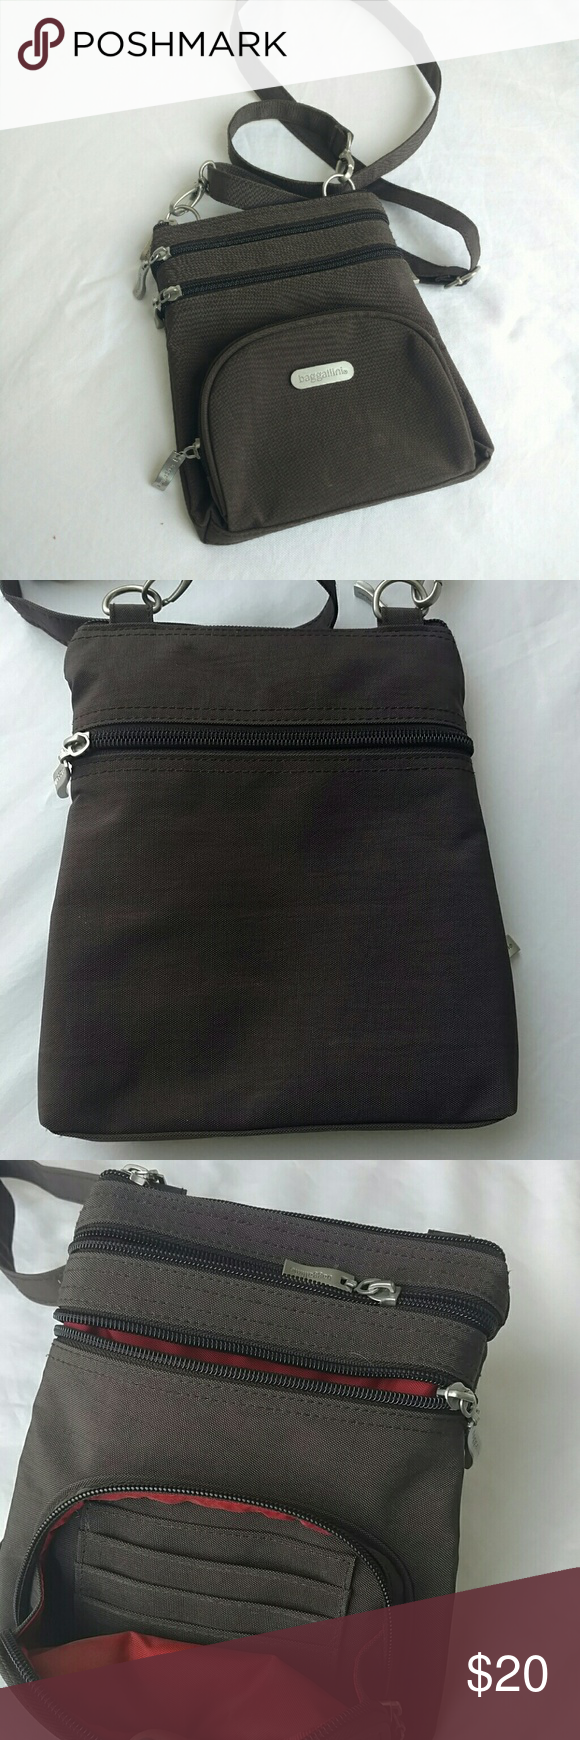 Baggallini cross body bag Three outer front pockets, one with credit card slots, one back outer pocket. Main compartment has pencil holders and one zippered pocket. Adjustable straps  Metal hardware  Chocolate brown outter Inside red lined Baggallini Bags Crossbody Bags